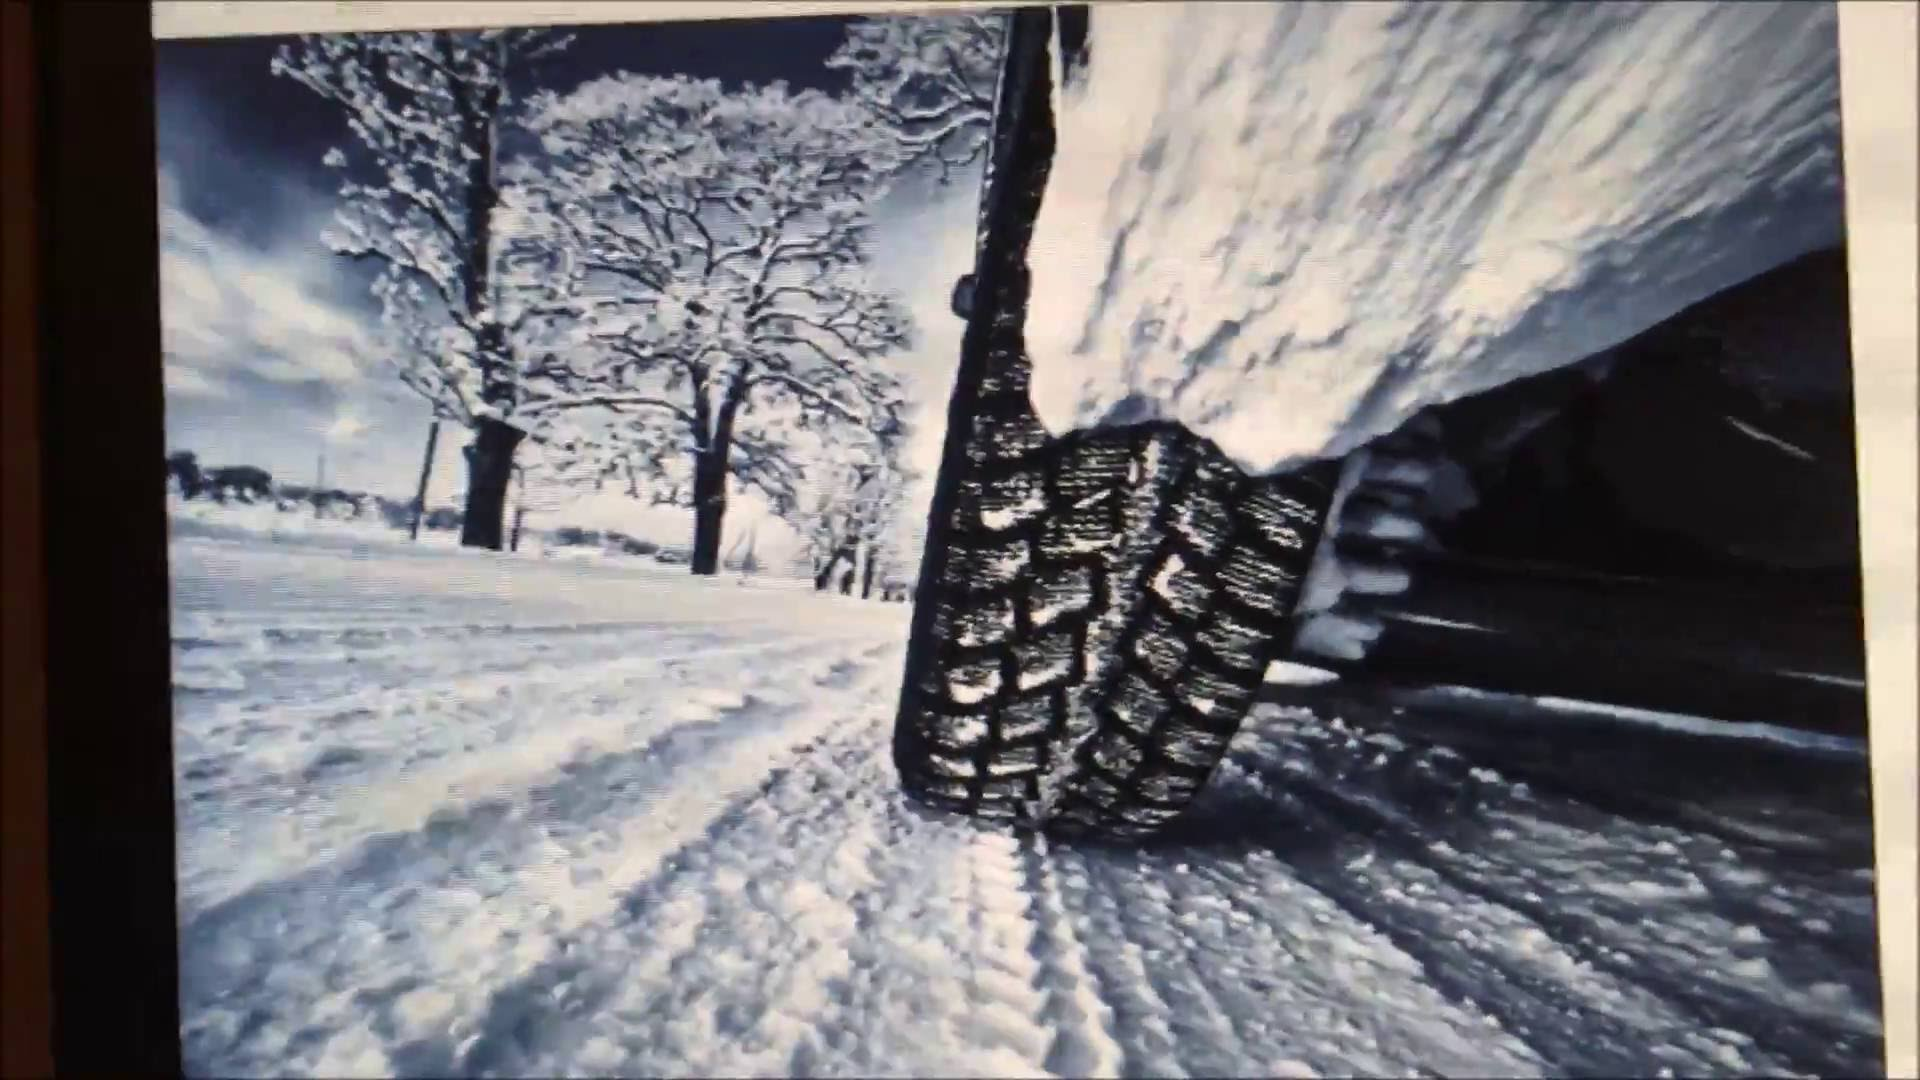 Winter/Snow Tire Buying Guide - What Makes The Best Winter Tire?